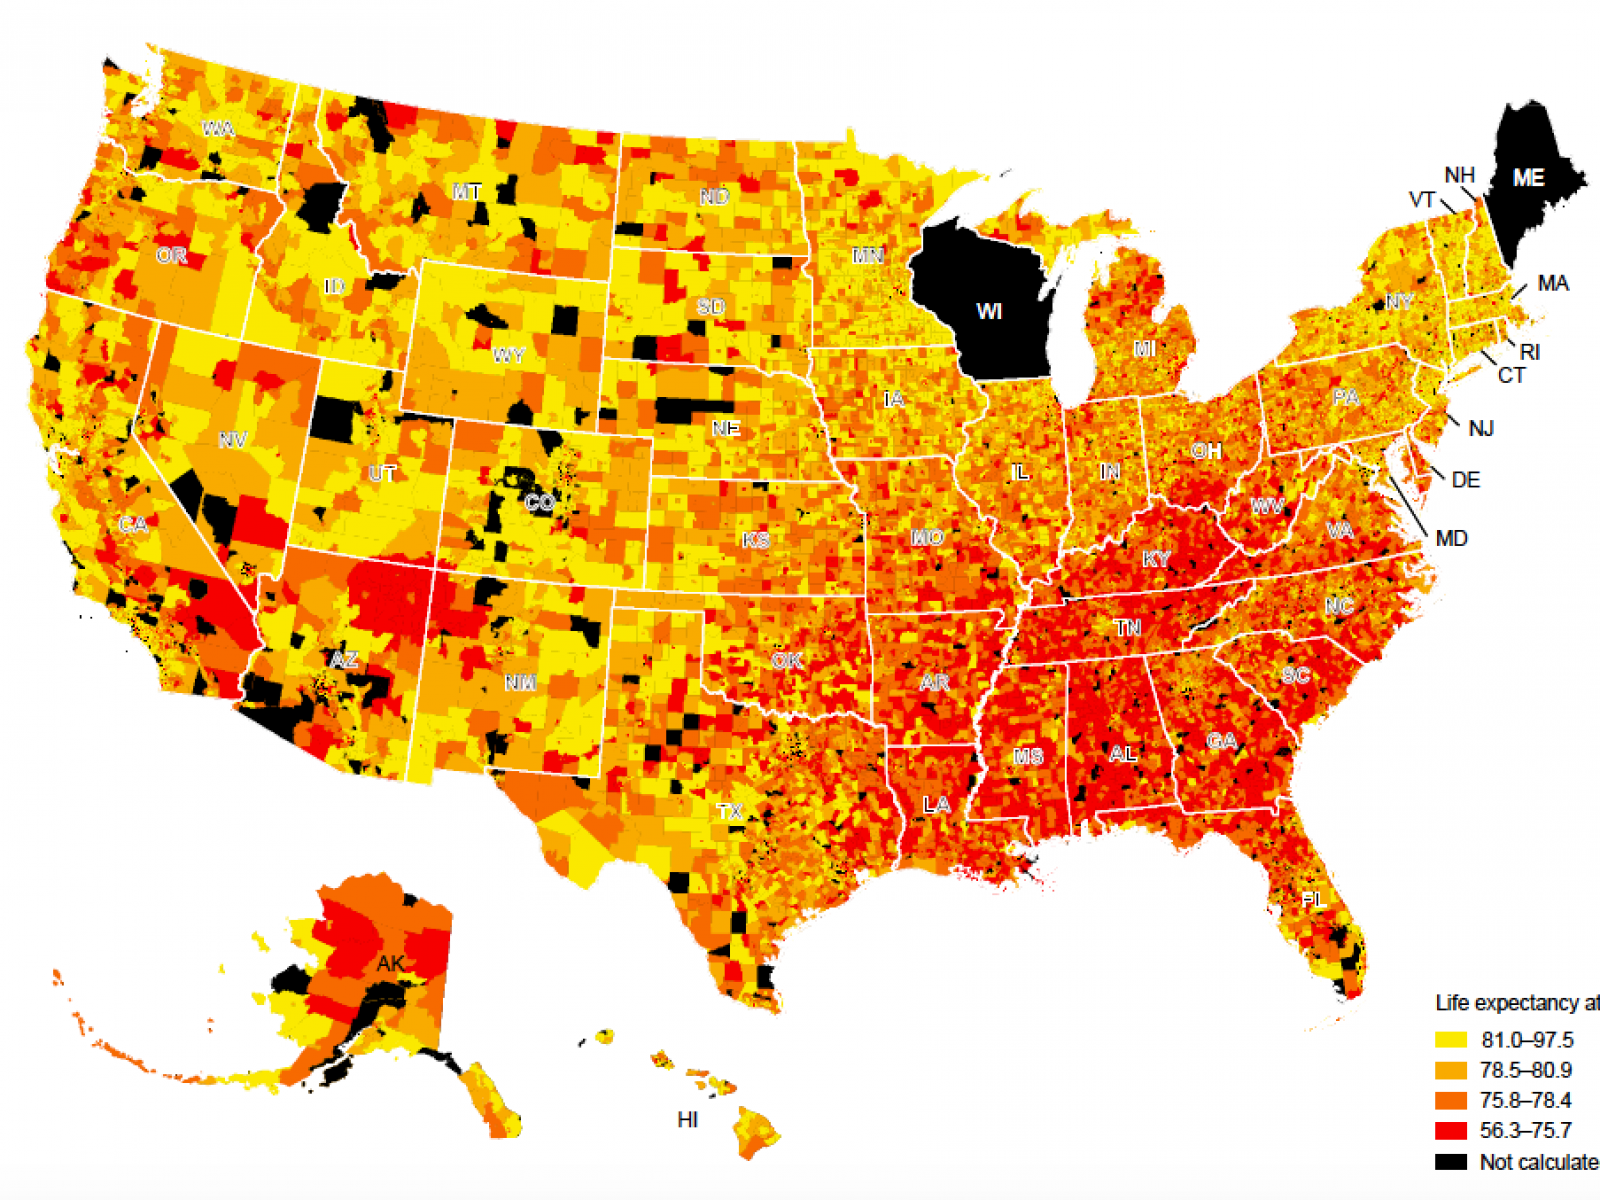 Us Life Expectancy Map These U.S. Cities, Neighborhoods Have Lowest Life Expectancy: How